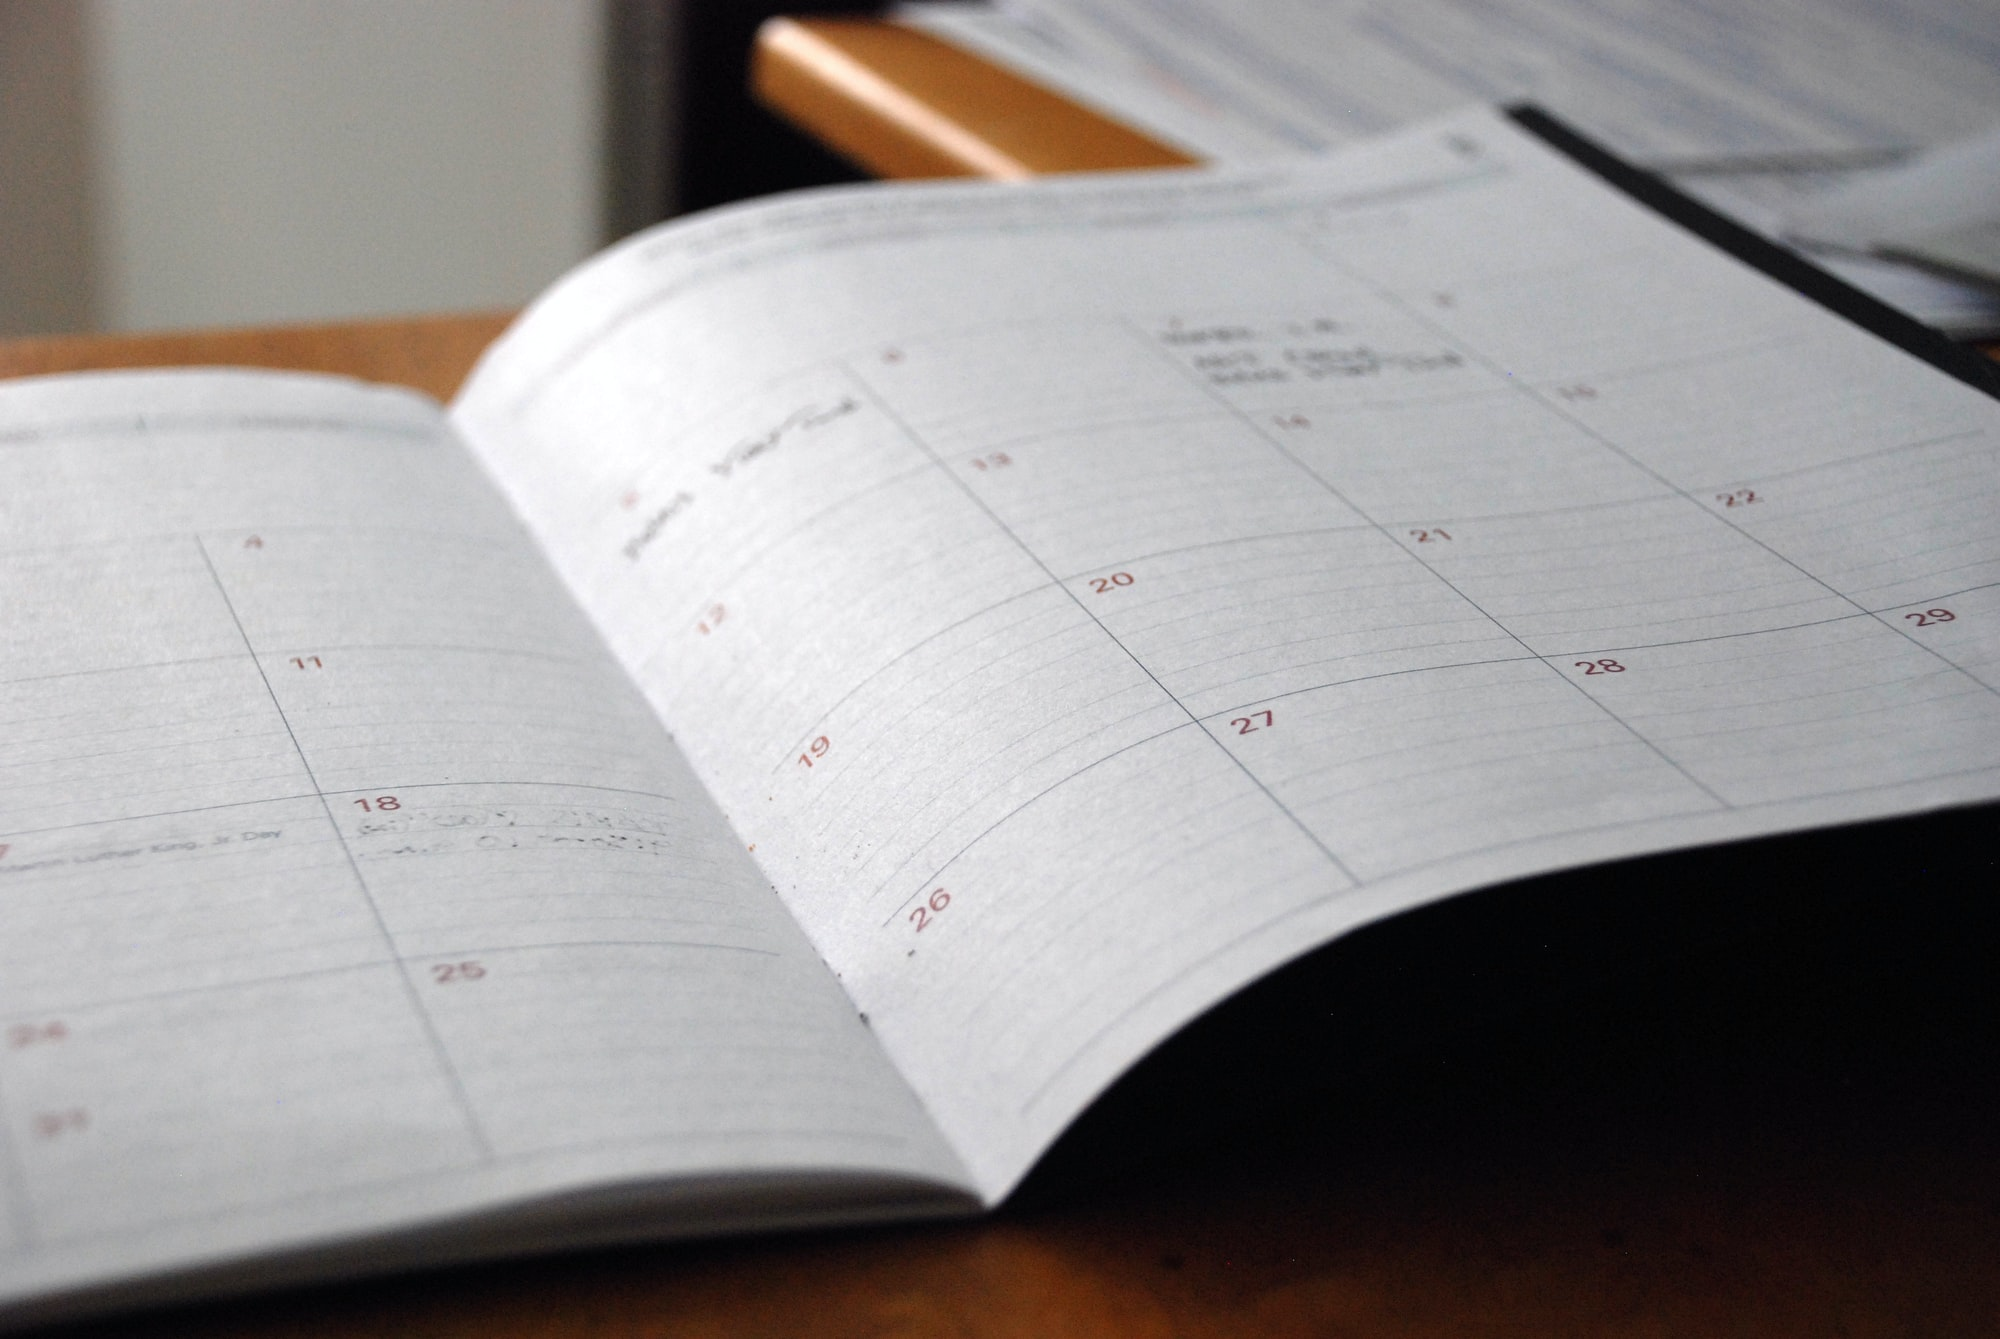 Set goals that can be achieved in the next 90 days